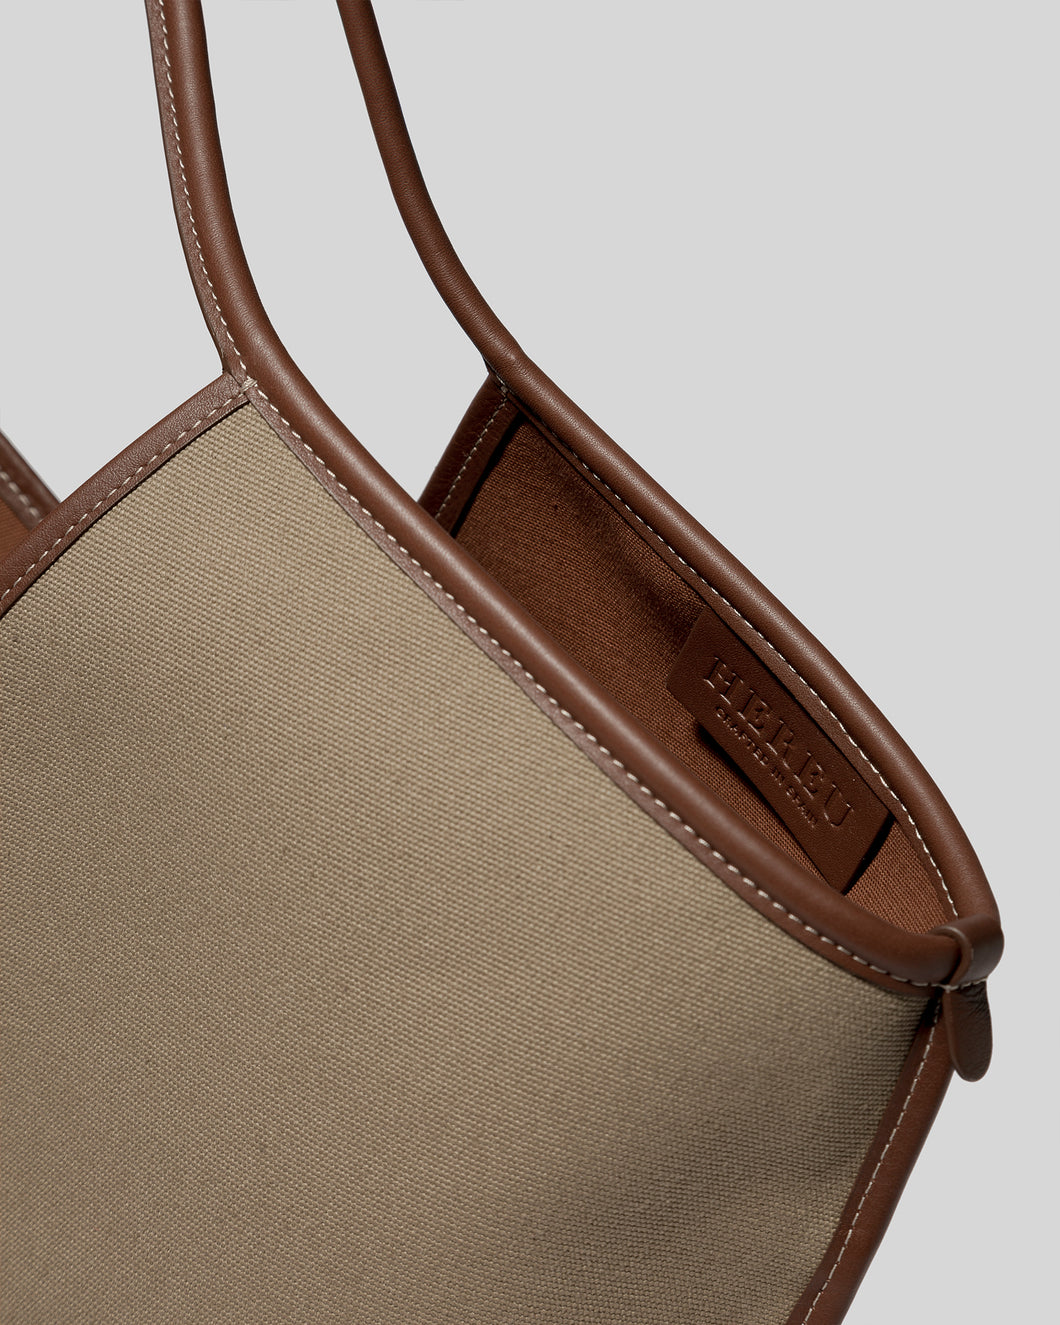 CALELLA - Leather-trimmed Organic Cotton Tote